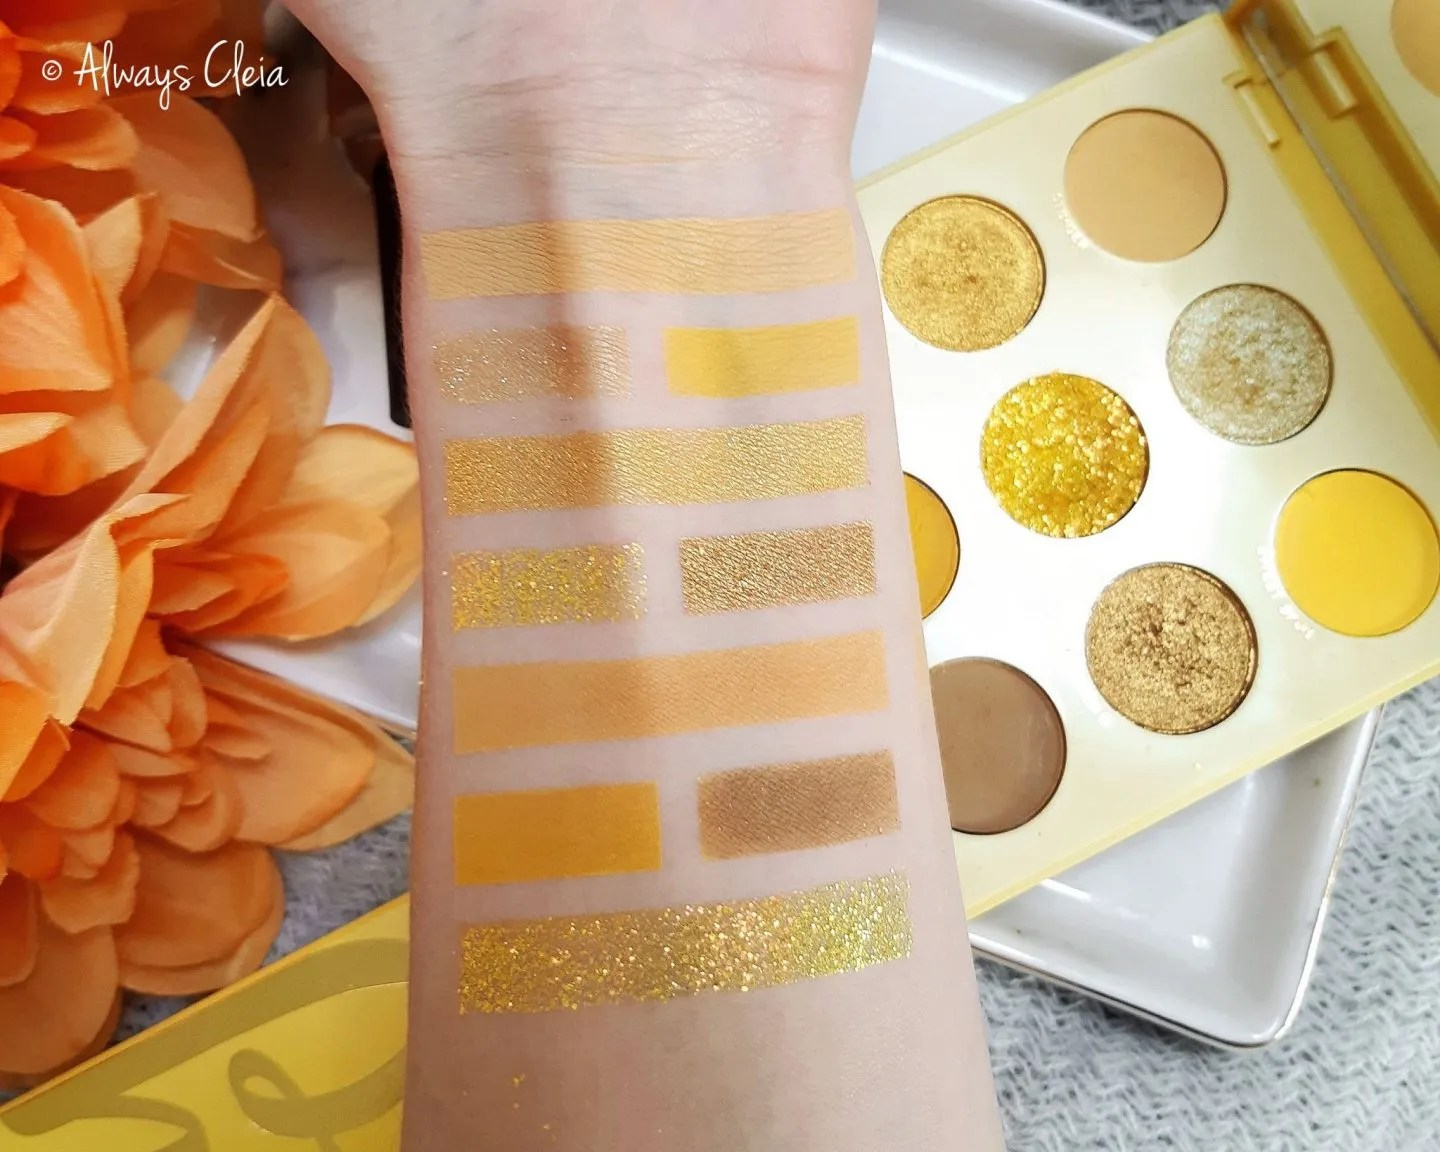 ColorPop Uh Huh Honey Palette Swatches